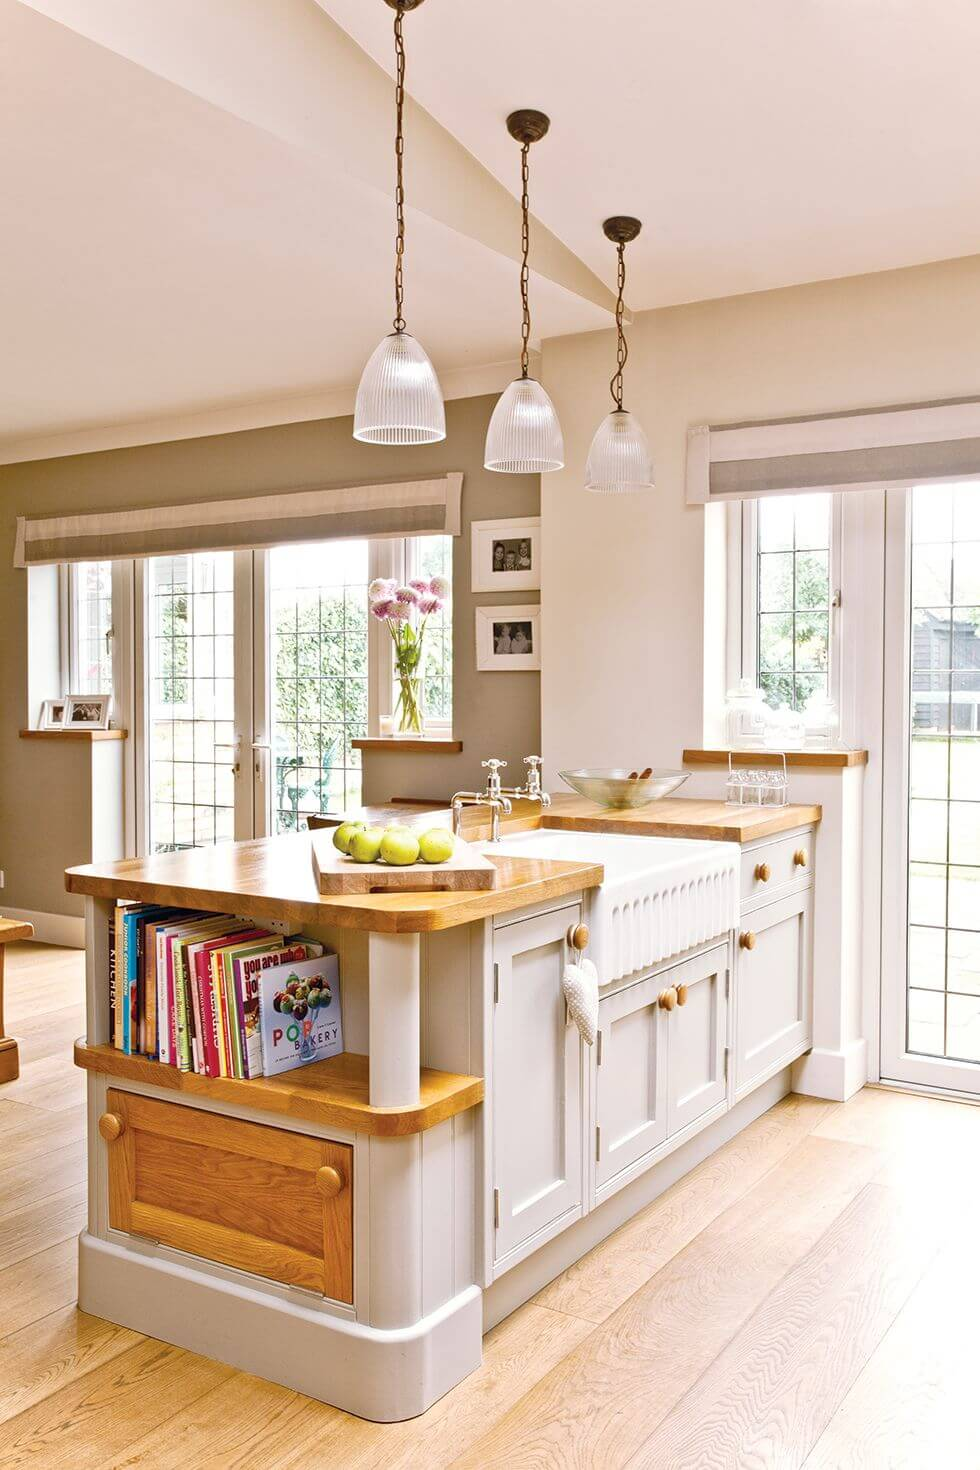 Expansion of the Smart Kitchen Island